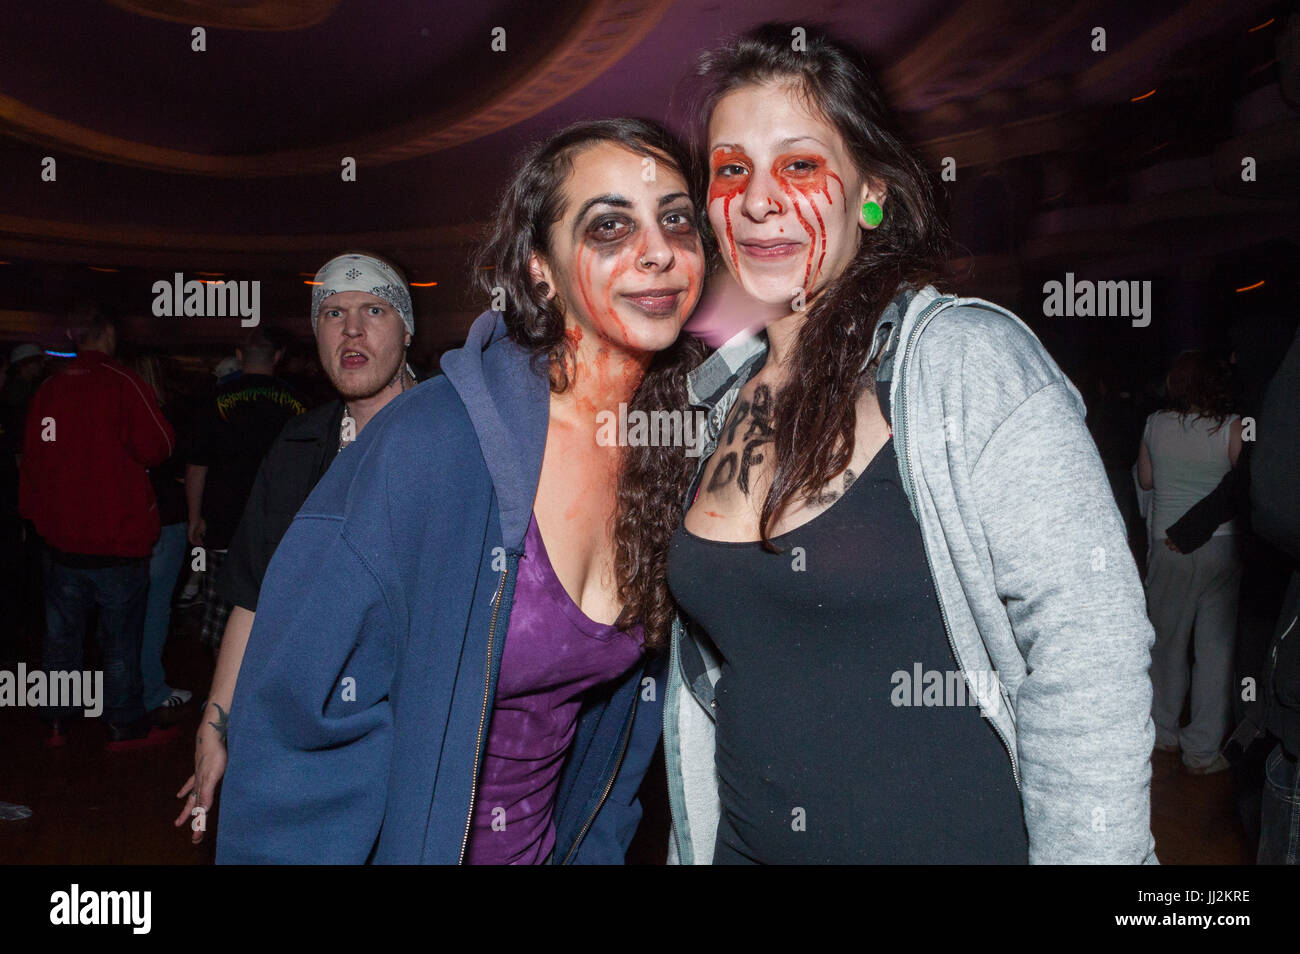 Juggalos (Insane Clown Posse fans) at an ICP concert at the Eagle/Rave club in Milwaukee, Wisconsin. - Stock Image